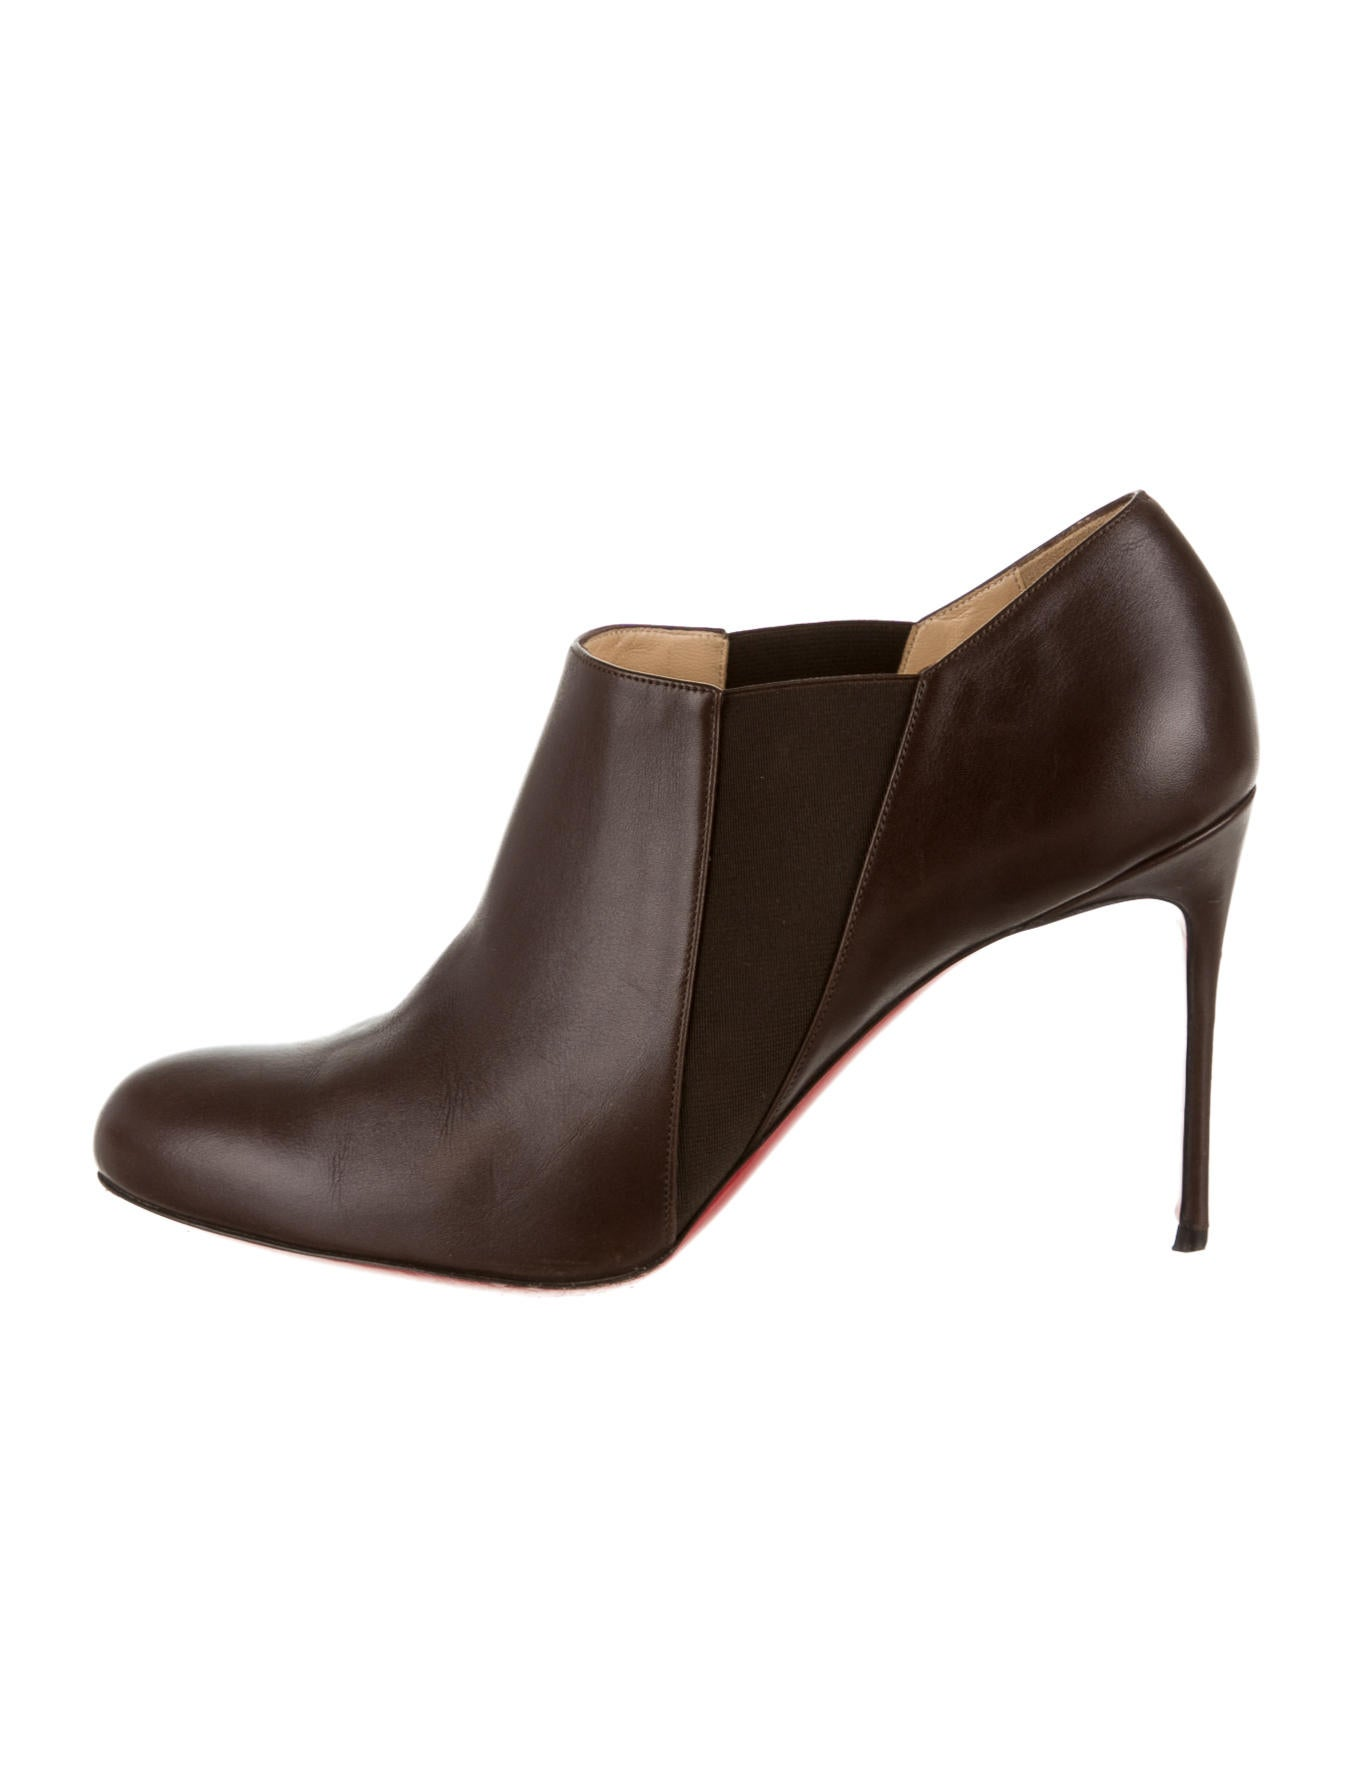 christian louboutin round-toe booties Brown leather | The Little ...